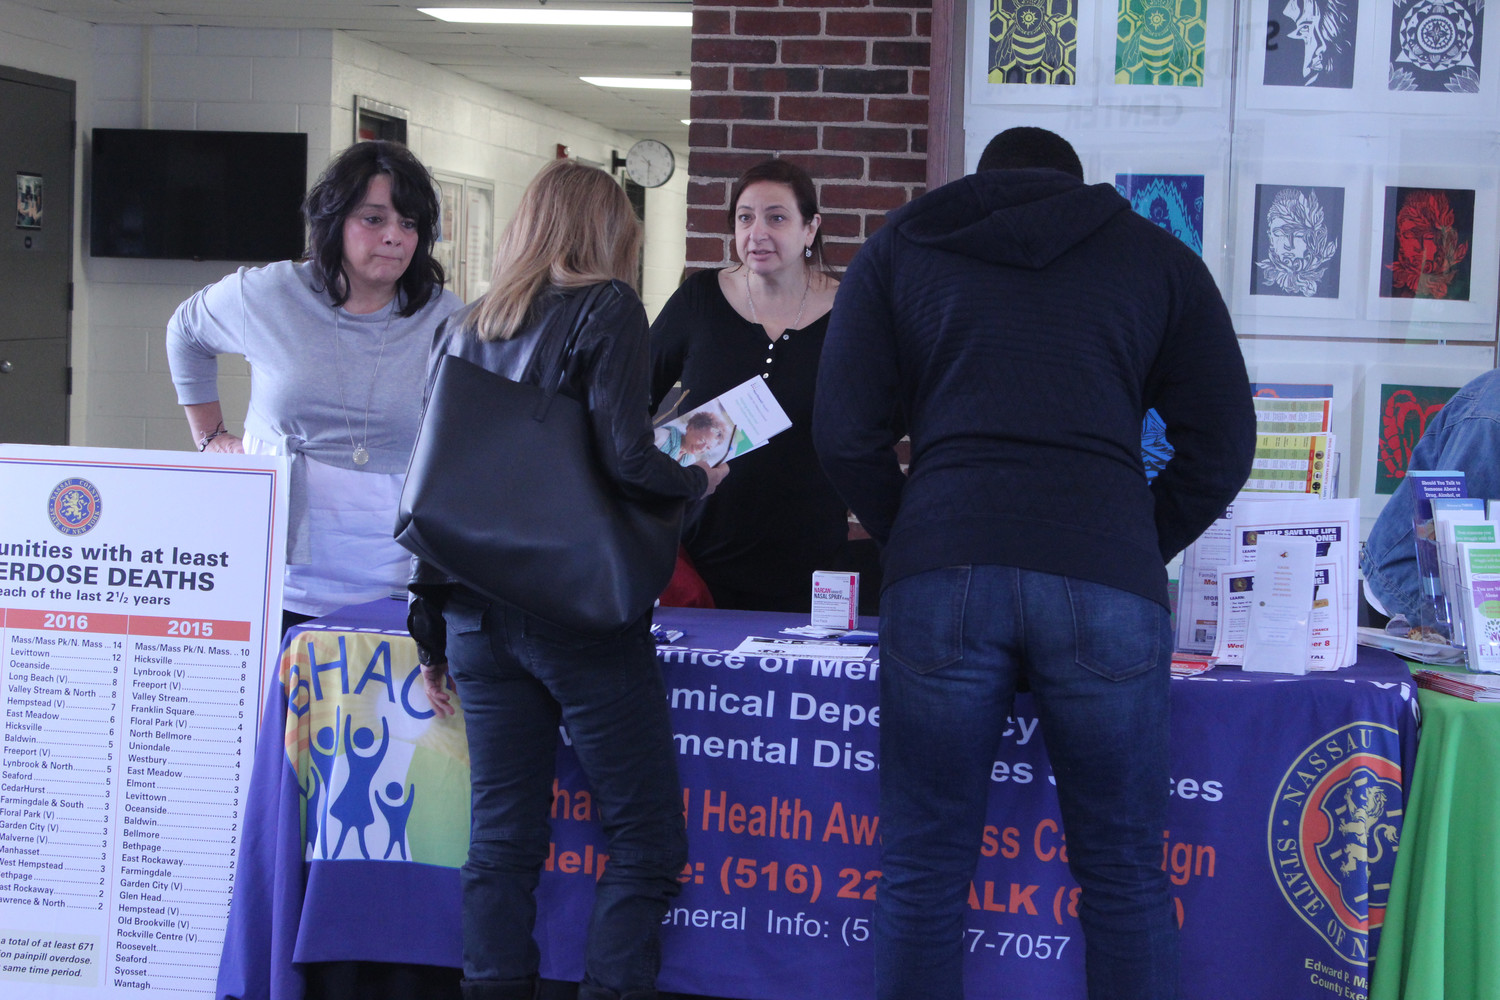 Linda Mangano, far left, along with Eden Laikin, shared information about the programs offered by Nassau County's Behavioral Health and Awareness Campaign.